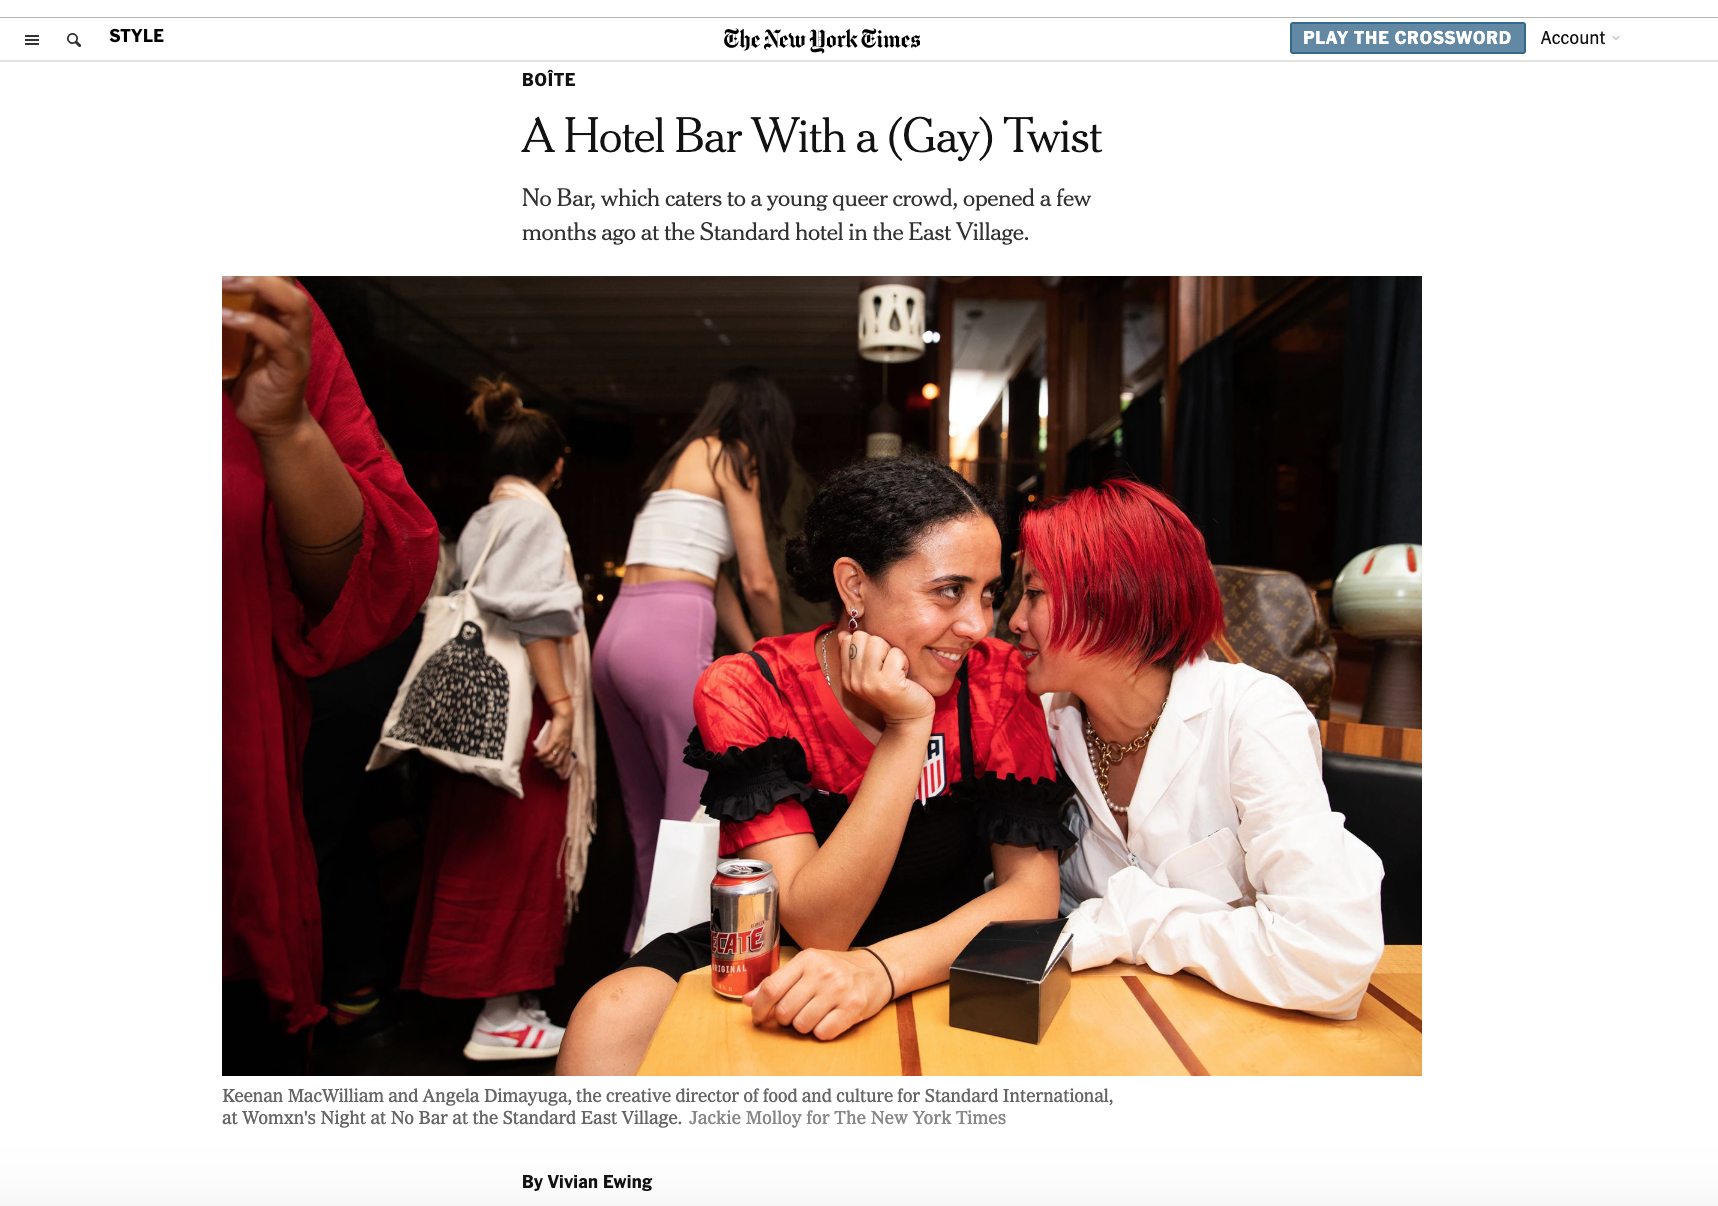 A Hotel Bar With a (Gay) Twist - The New York Times